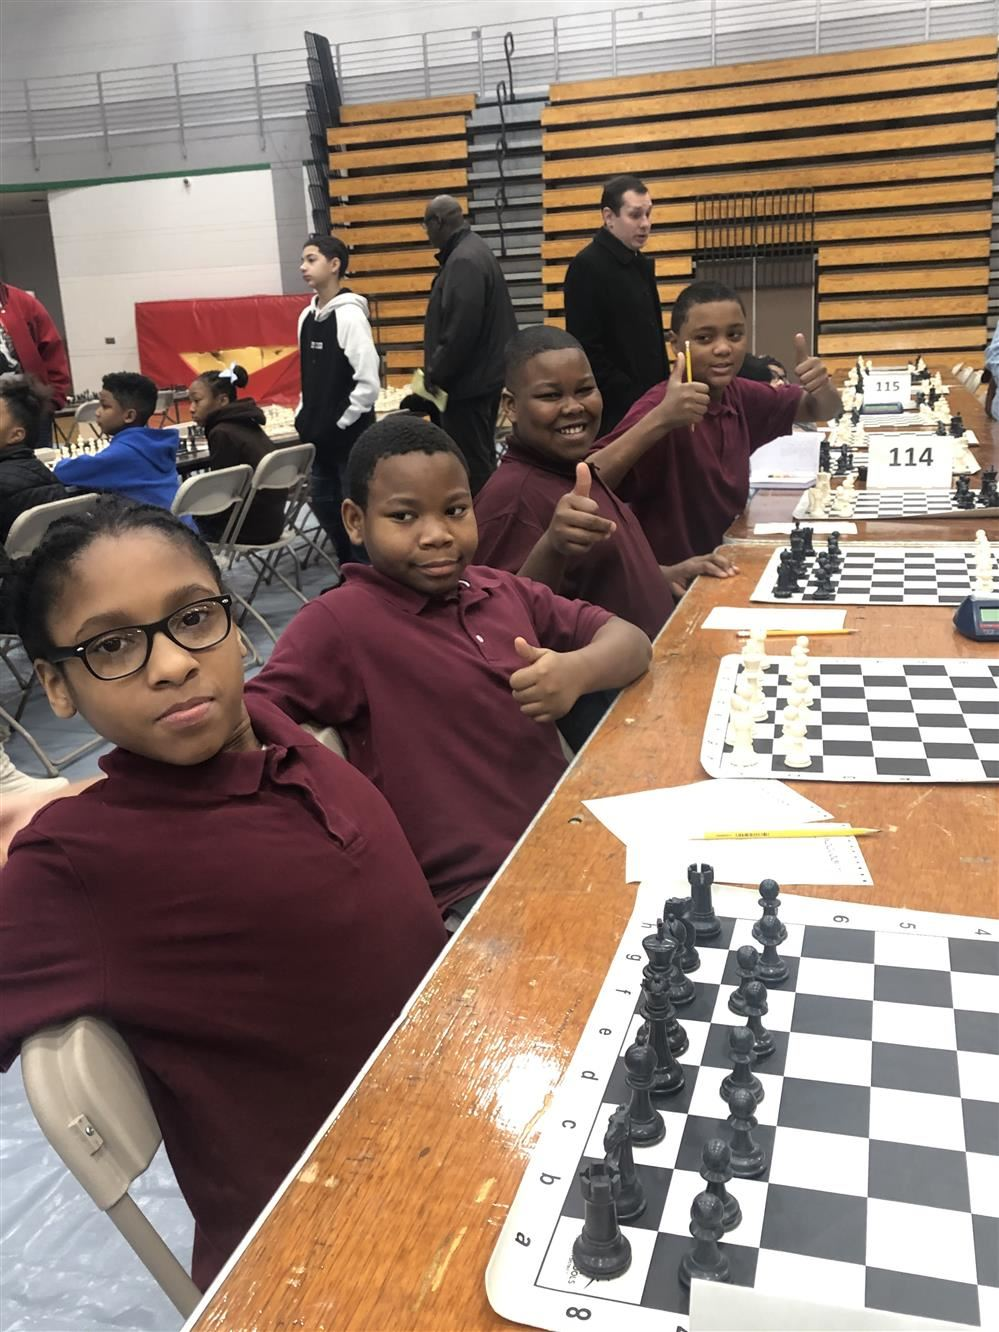 CONGRATULATIONS BREWER TIGER'S CHESS TEAM!!!